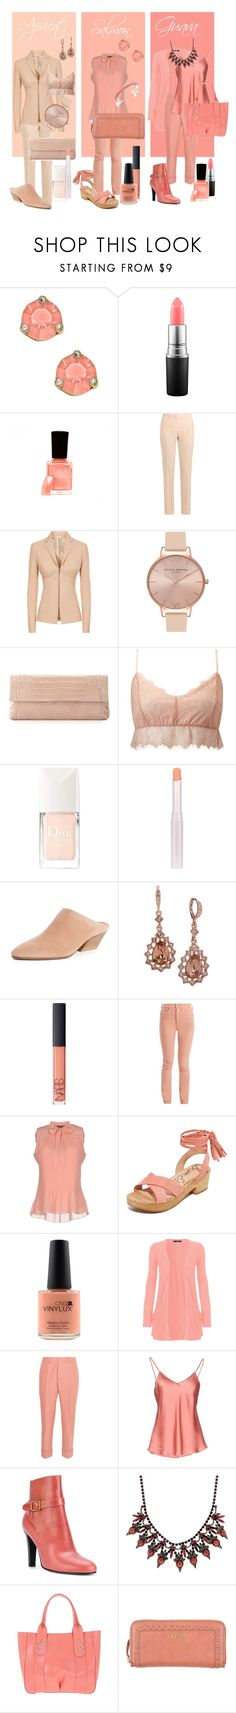 """Warm Neutral Nudes"" by lora-86 on Polyvore featuring Kate Spade, MAC Cosmetics, Givenchy, La Perla, Olivia Burton, Nancy Gonzalez, Miss Selfridge, Christian Dior, Vince and NARS Cosmetics"